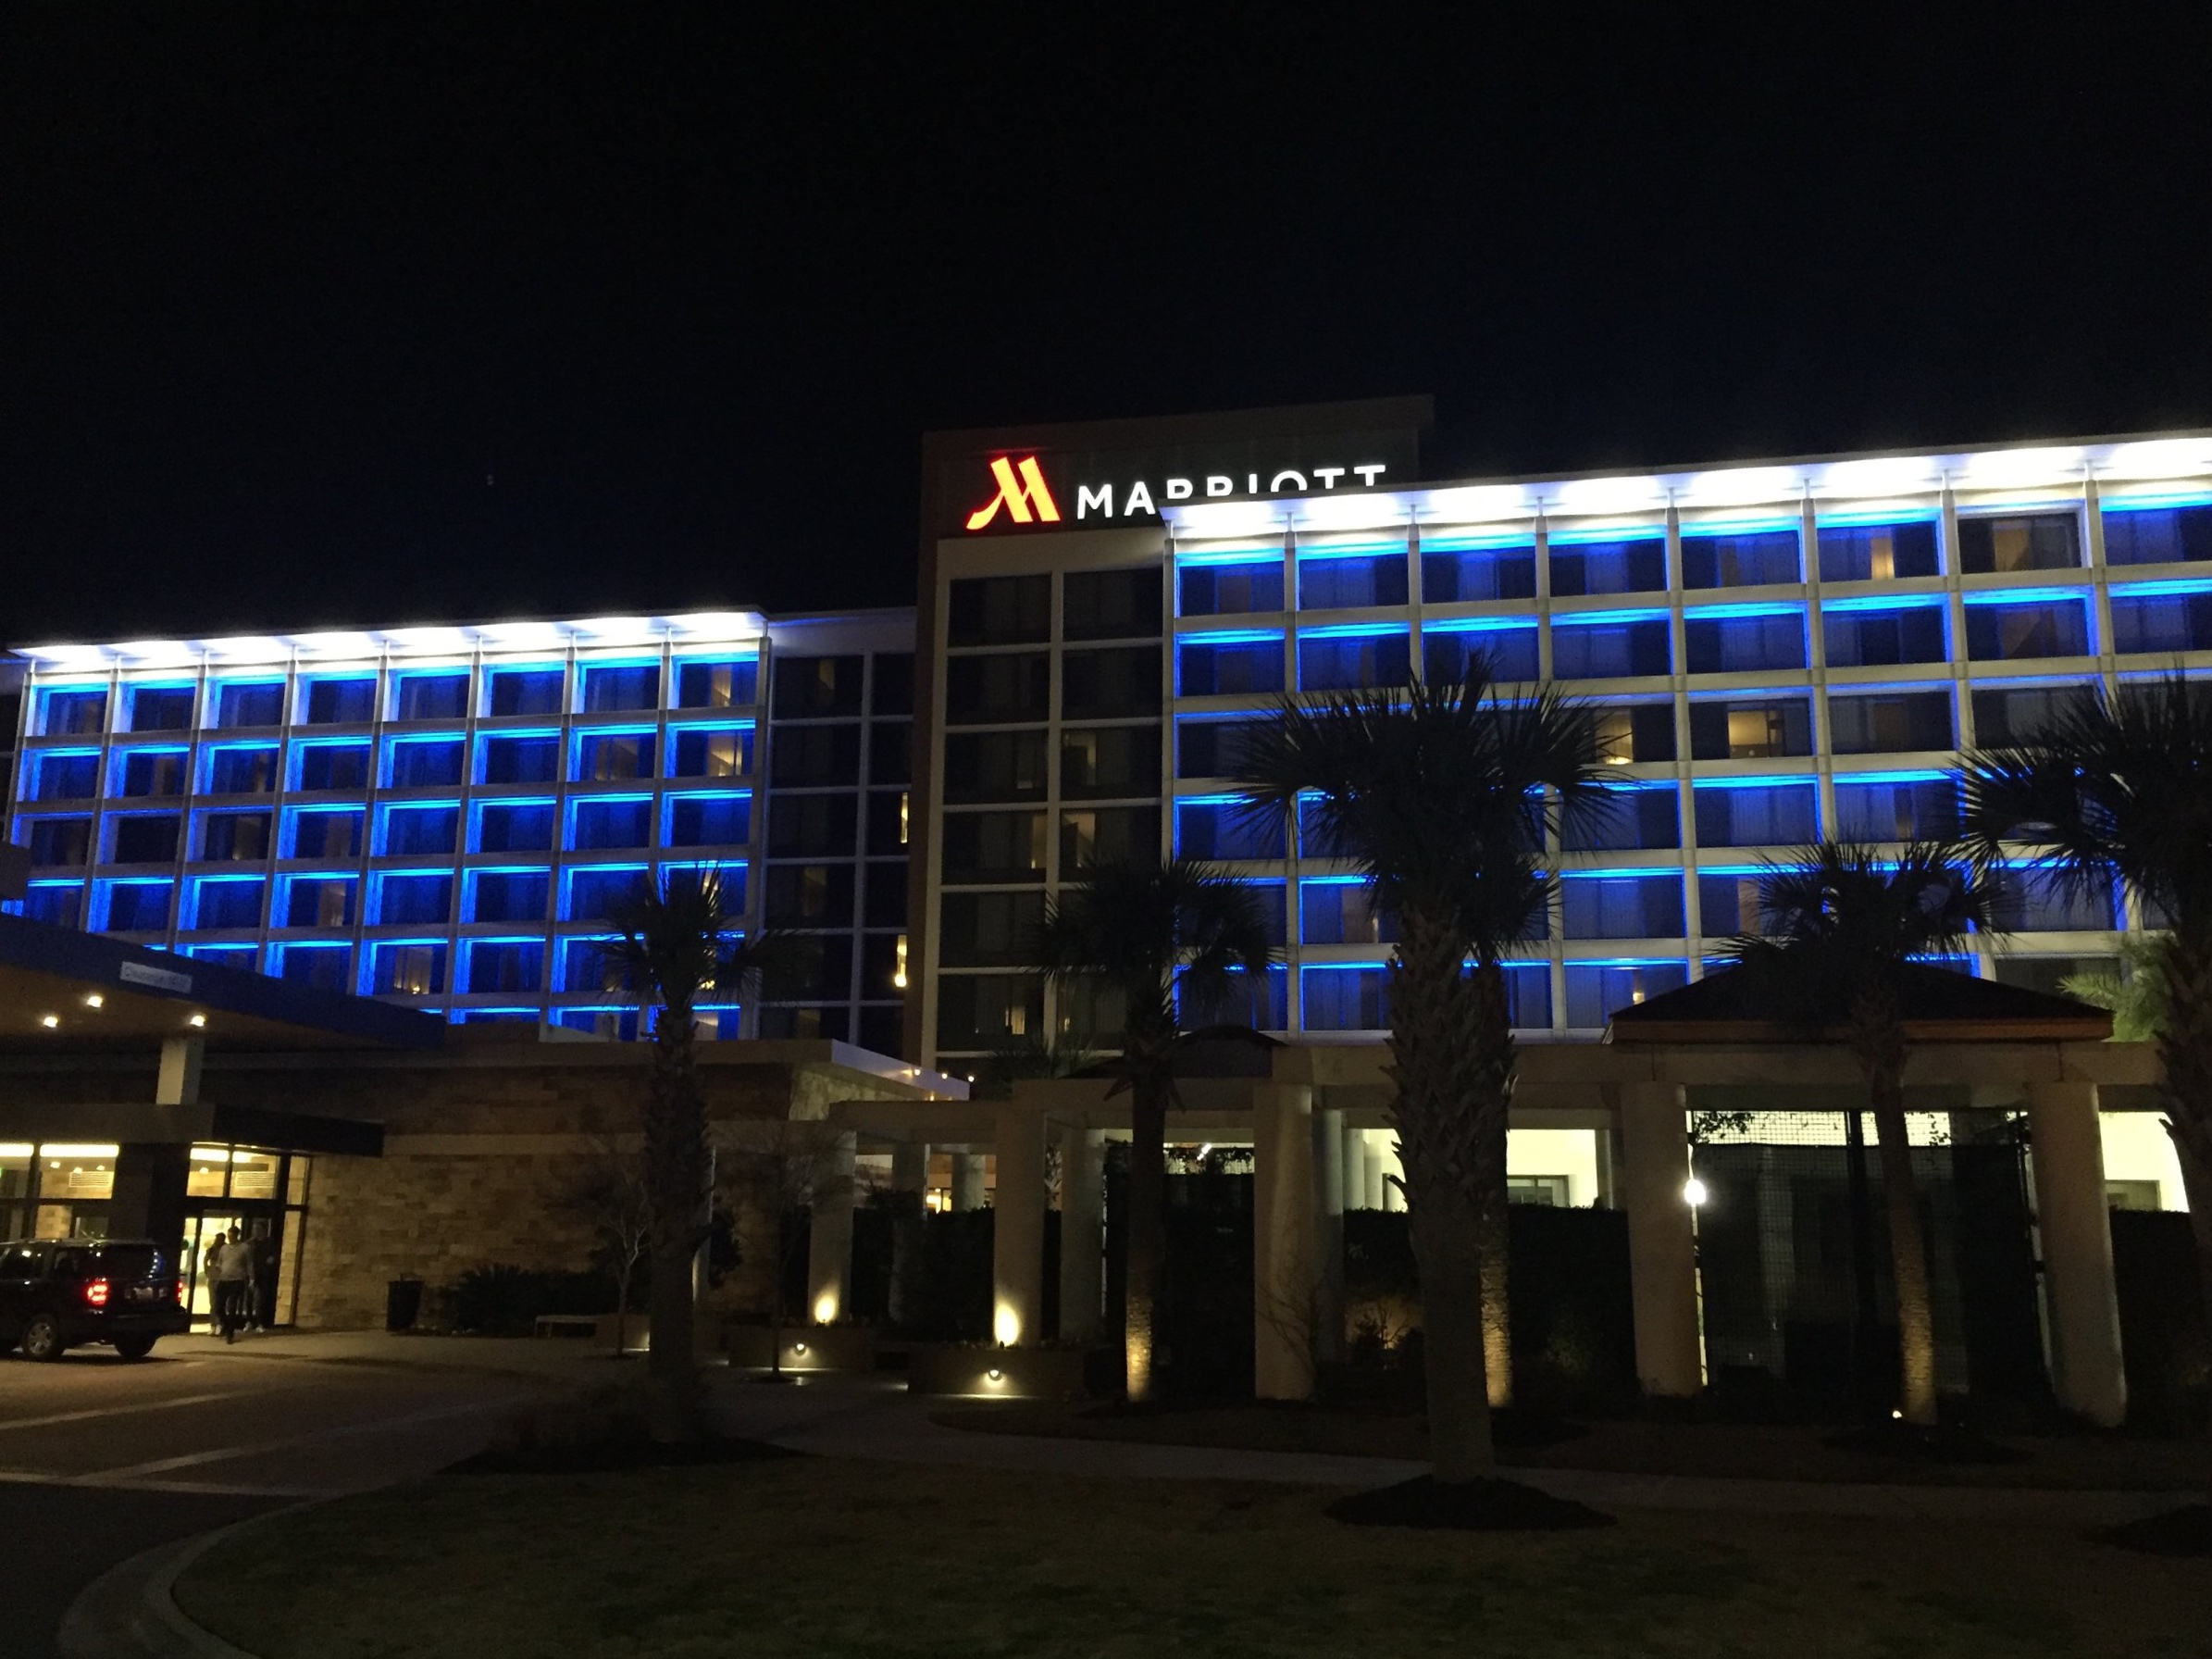 The recently renovated North Charleston Marriott.